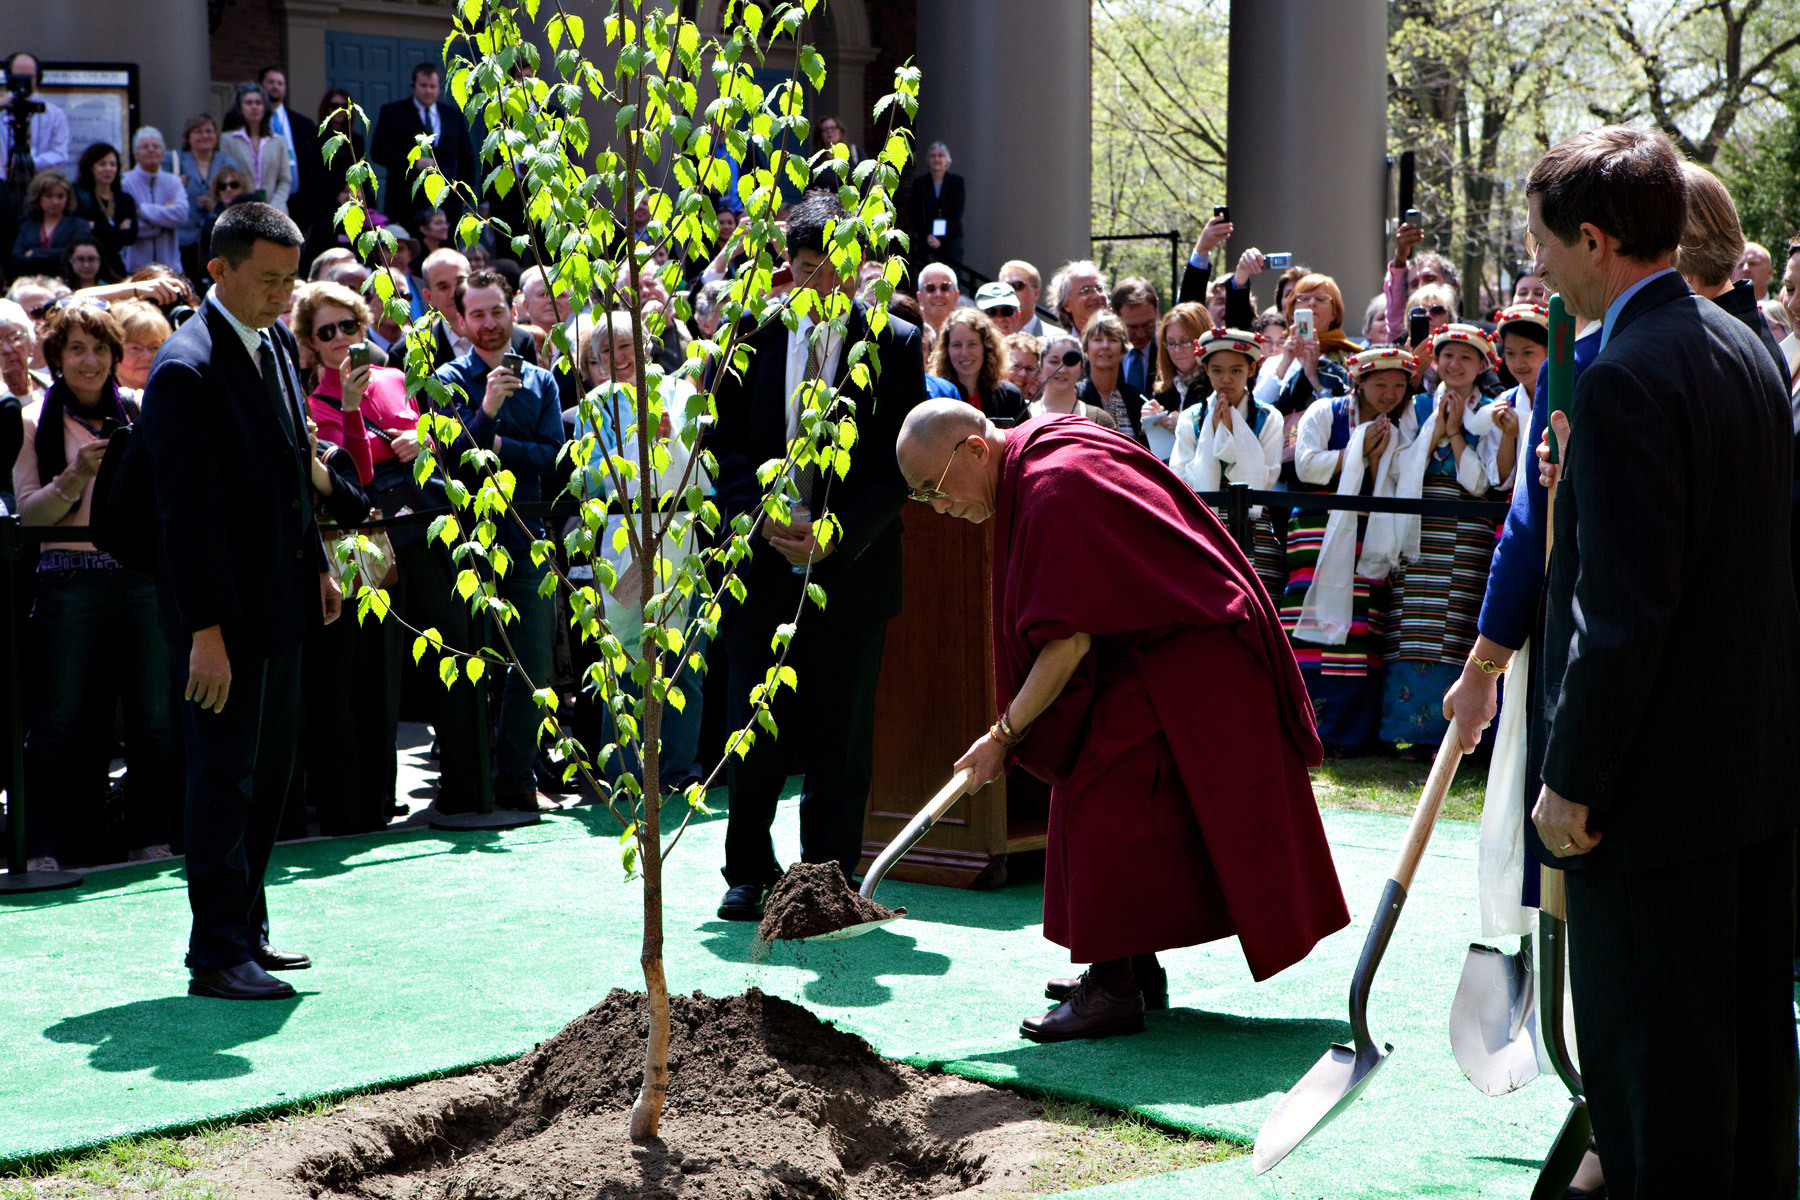 The Dalai Lama Visited Harvard to Speak and Plant a Tree